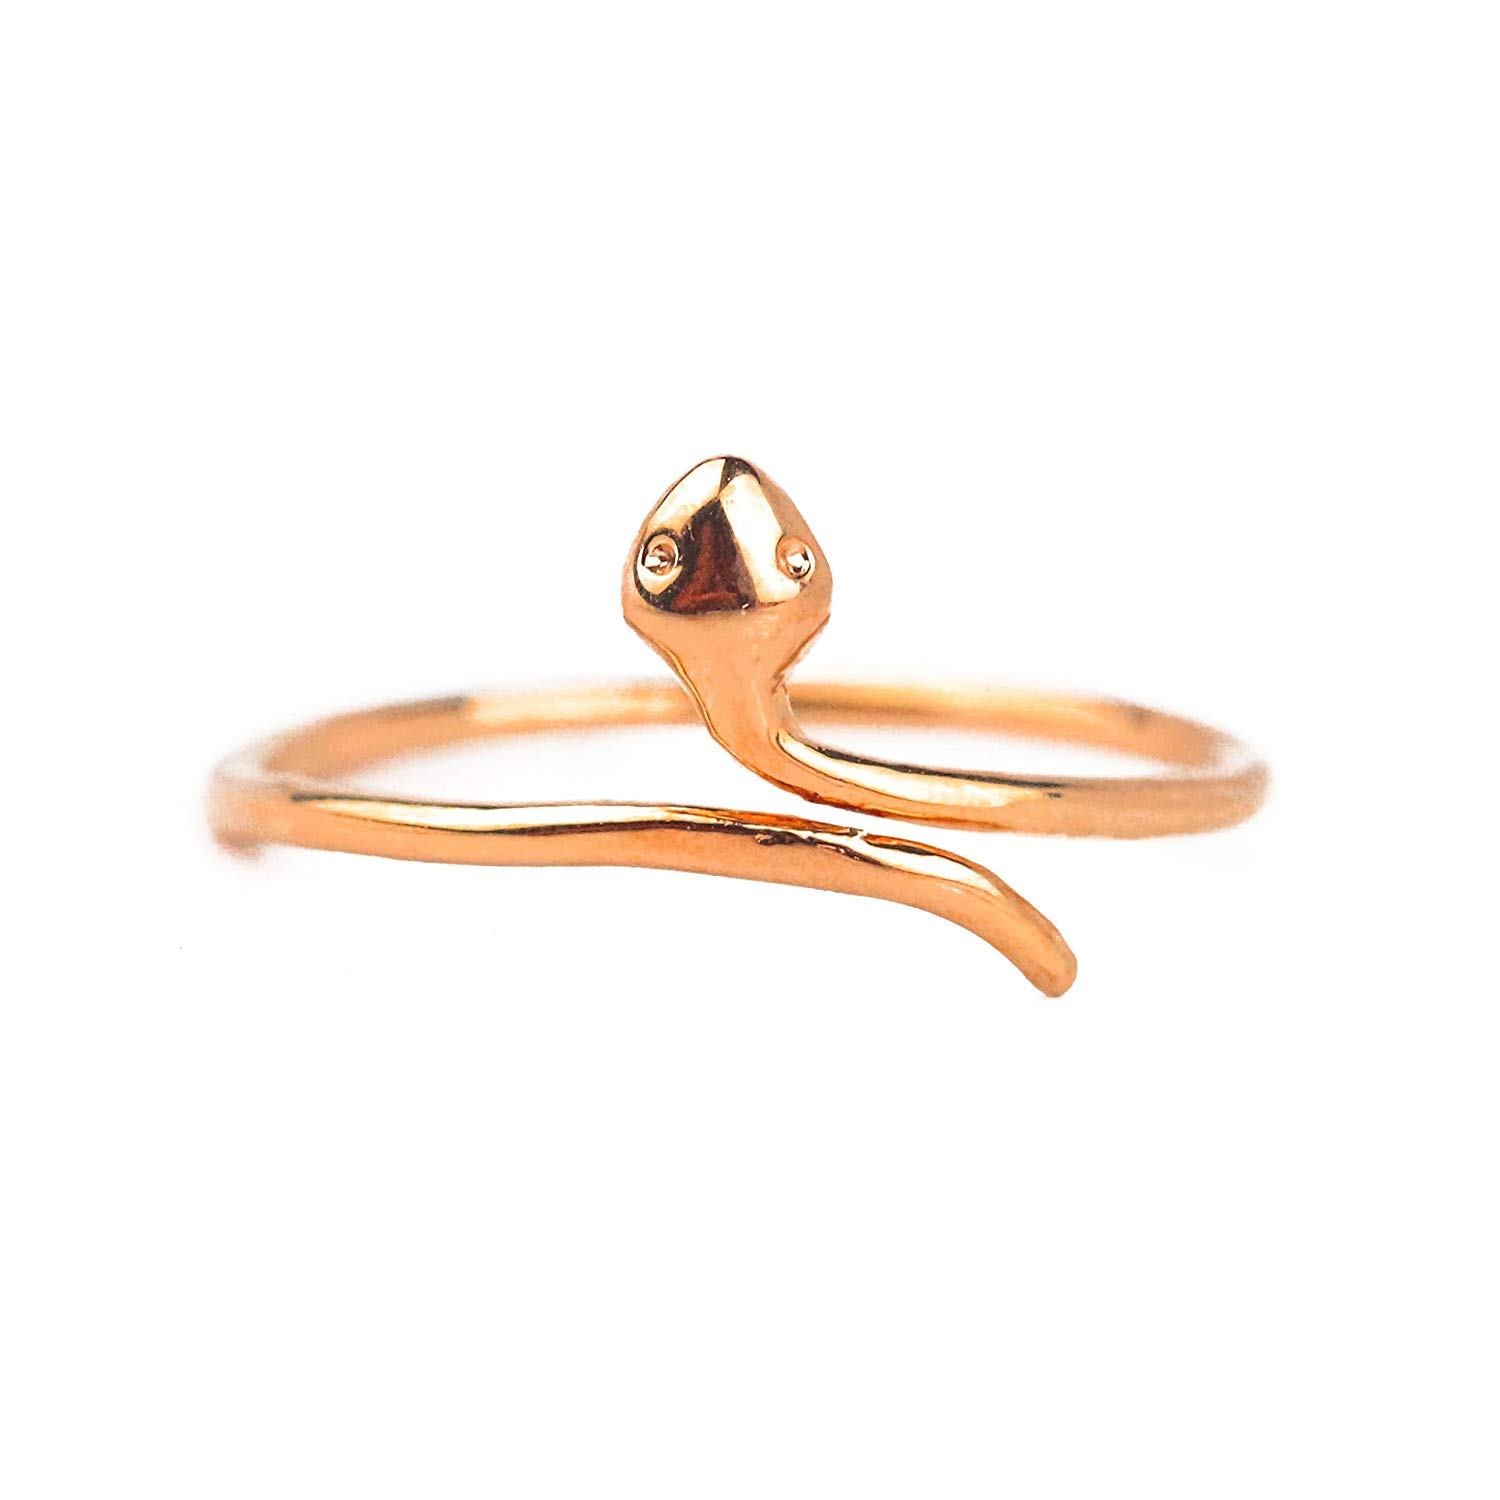 SNAKE RING, Rose Gold Plated Alloy Ring, Pinky Ring Knuckle Rose Gold Ring Adjustable for Women Ring Size 2.5-4 Thin Stackable Ring Unique